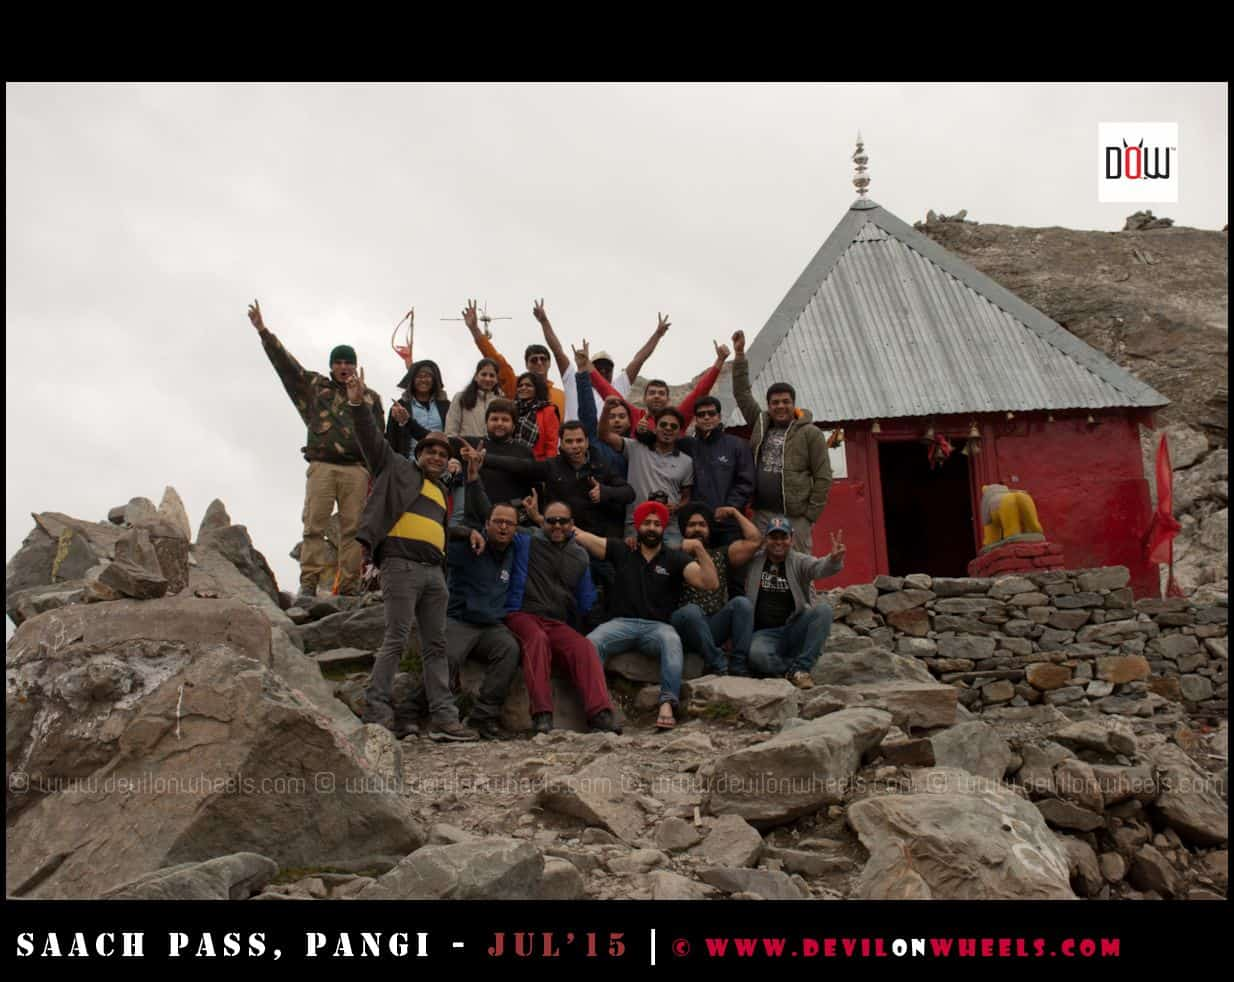 The Devils Gang at Sach Pass, Three cheers for the Spirits shown